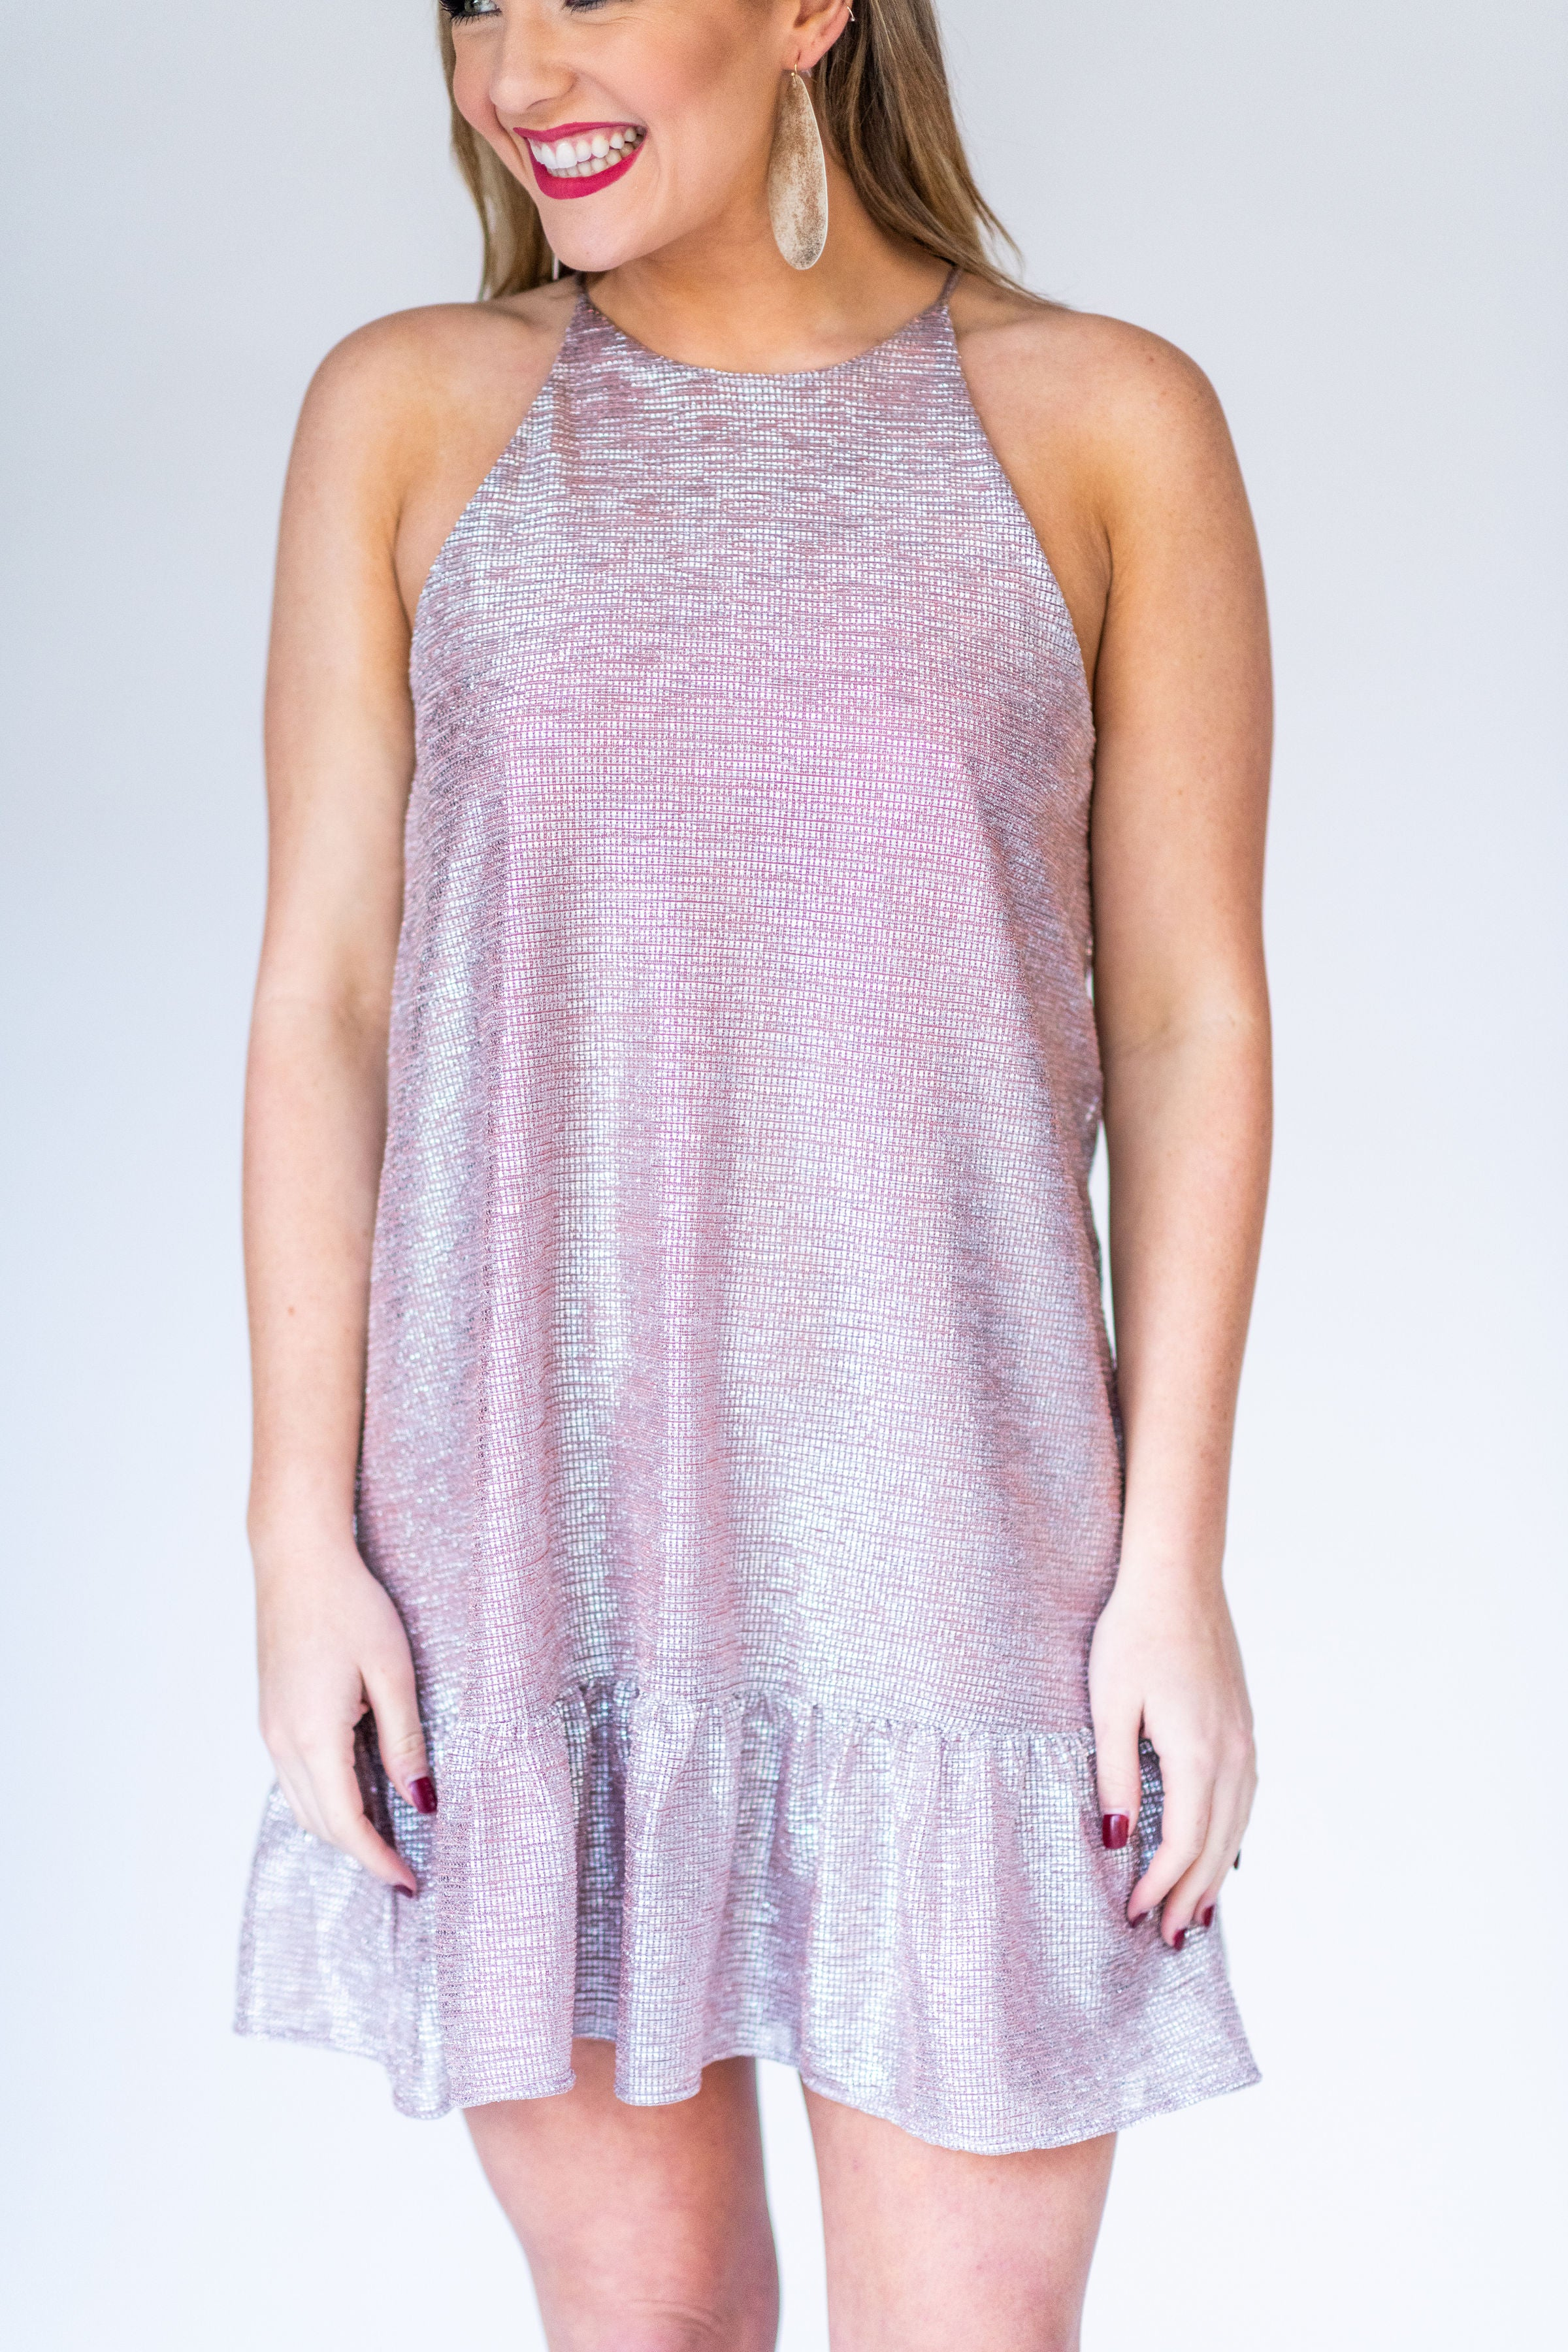 Crystal Clear Shimmer Cocktail Dress with Peplum Hem:  Rose Gold